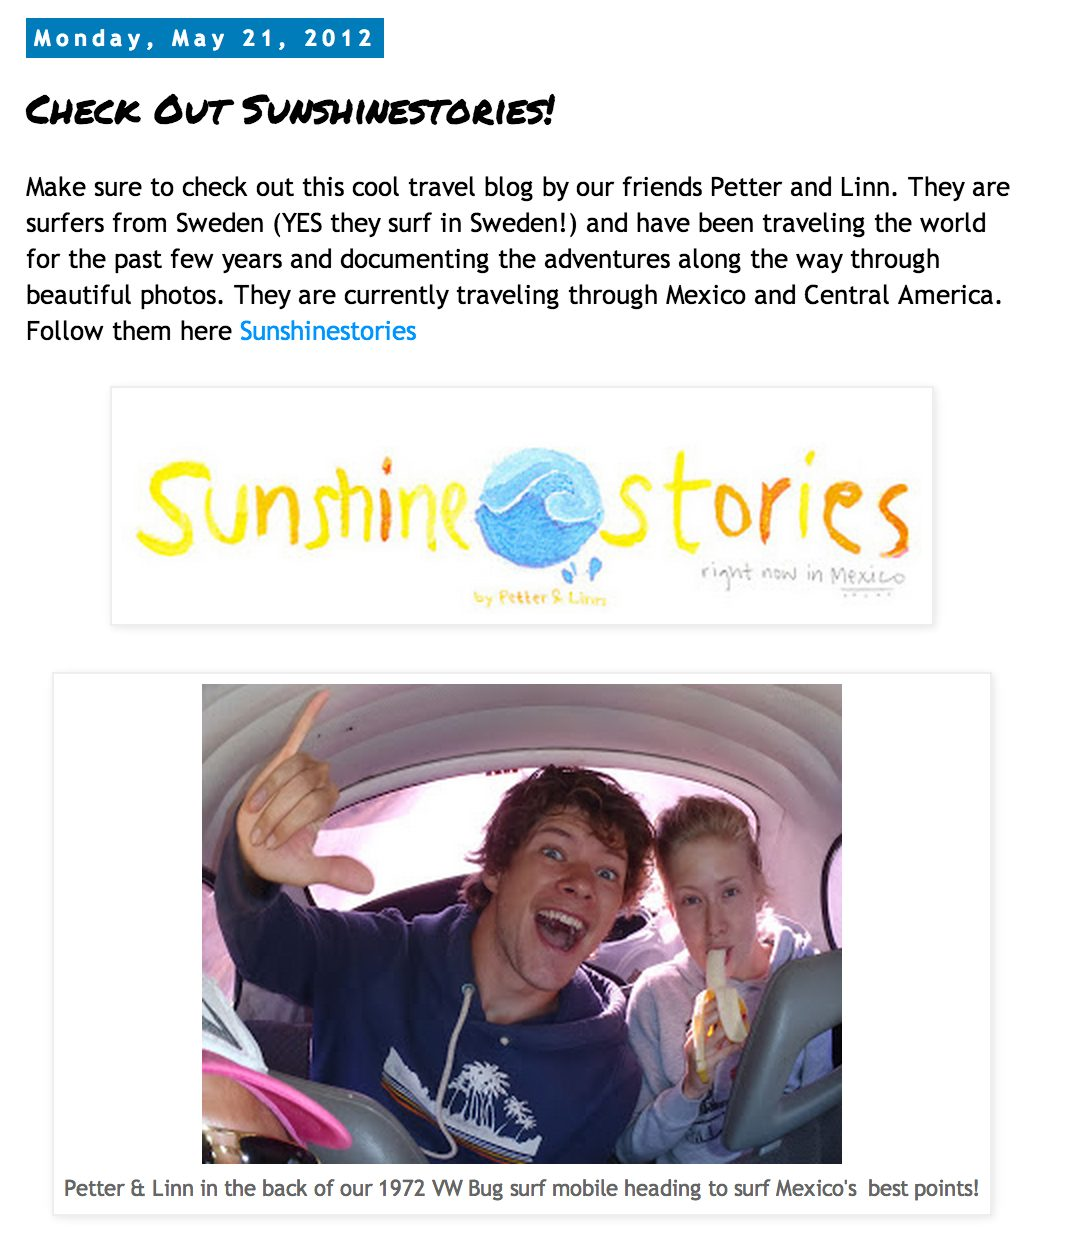 Sunshinestories in Mexico